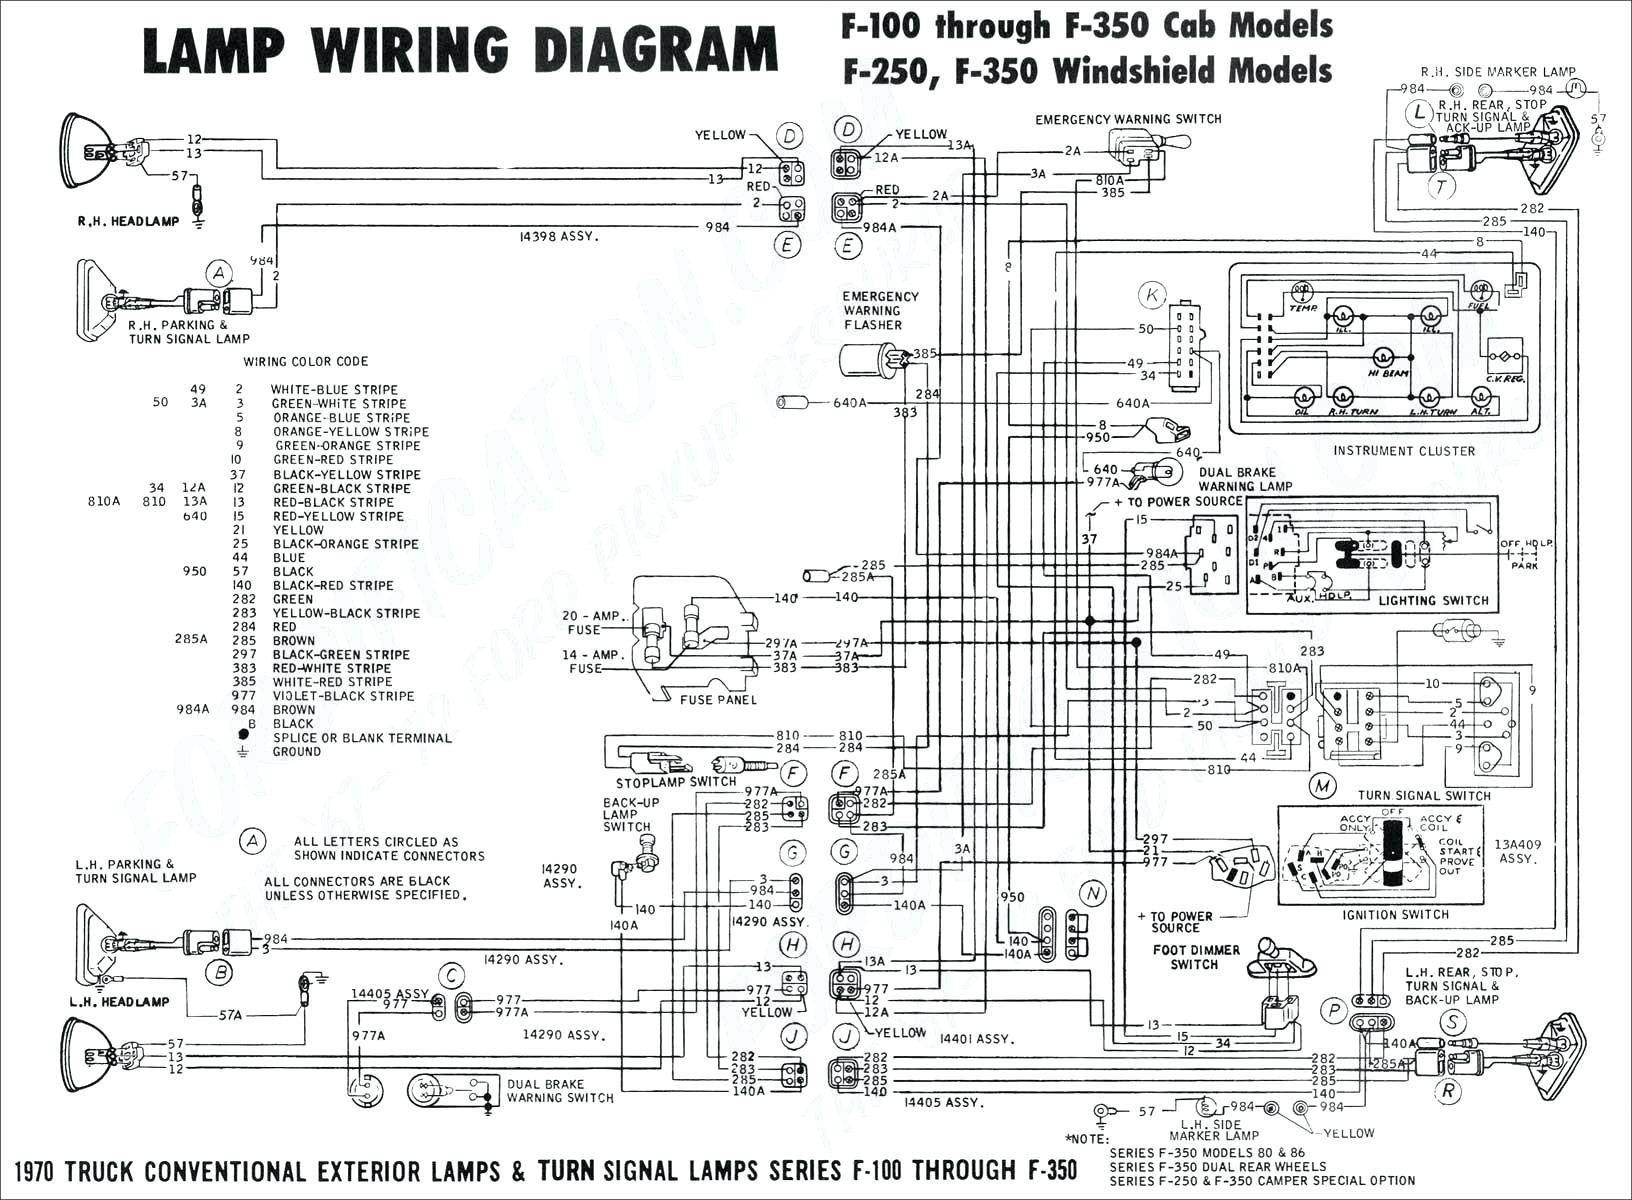 2000 F250 Tail Light Wiring Diagram Pool Light Wiring Diagram Of 2000 F250 Tail Light Wiring Diagram